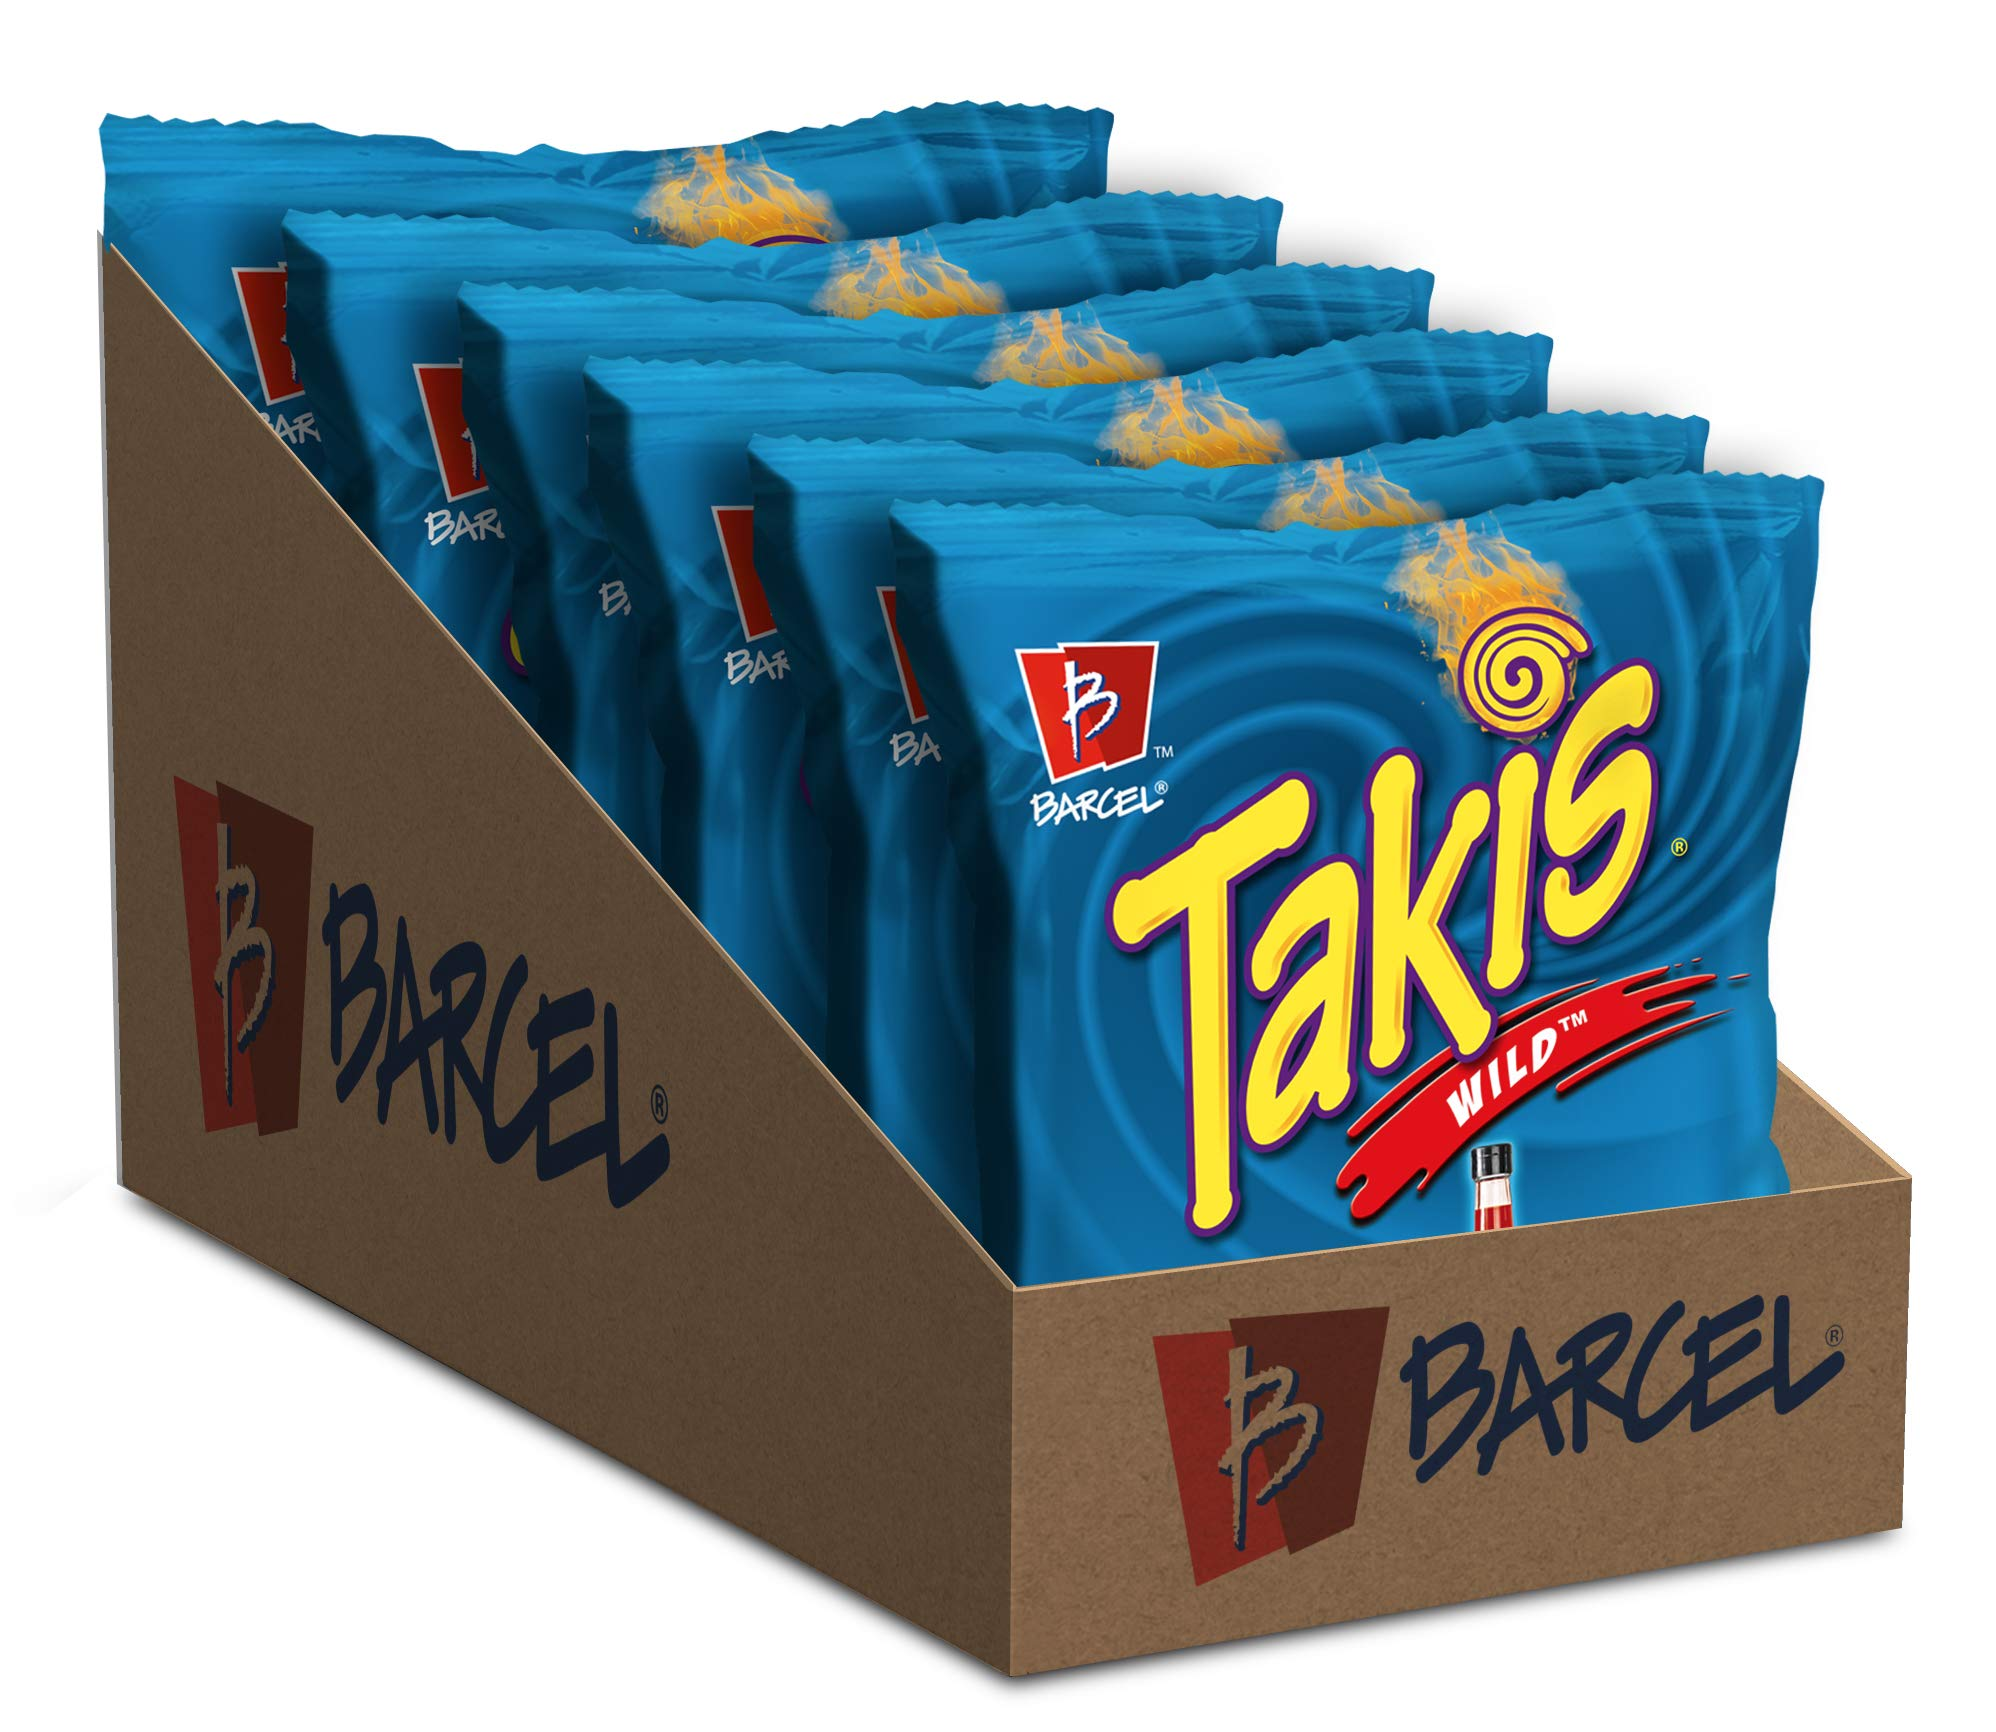 Barcel Takis - Crunchy Rolled Tortilla Chips – Wild Flavor (Spicy Buffalo Ranch), Box with 6 Bags (4 oz each)